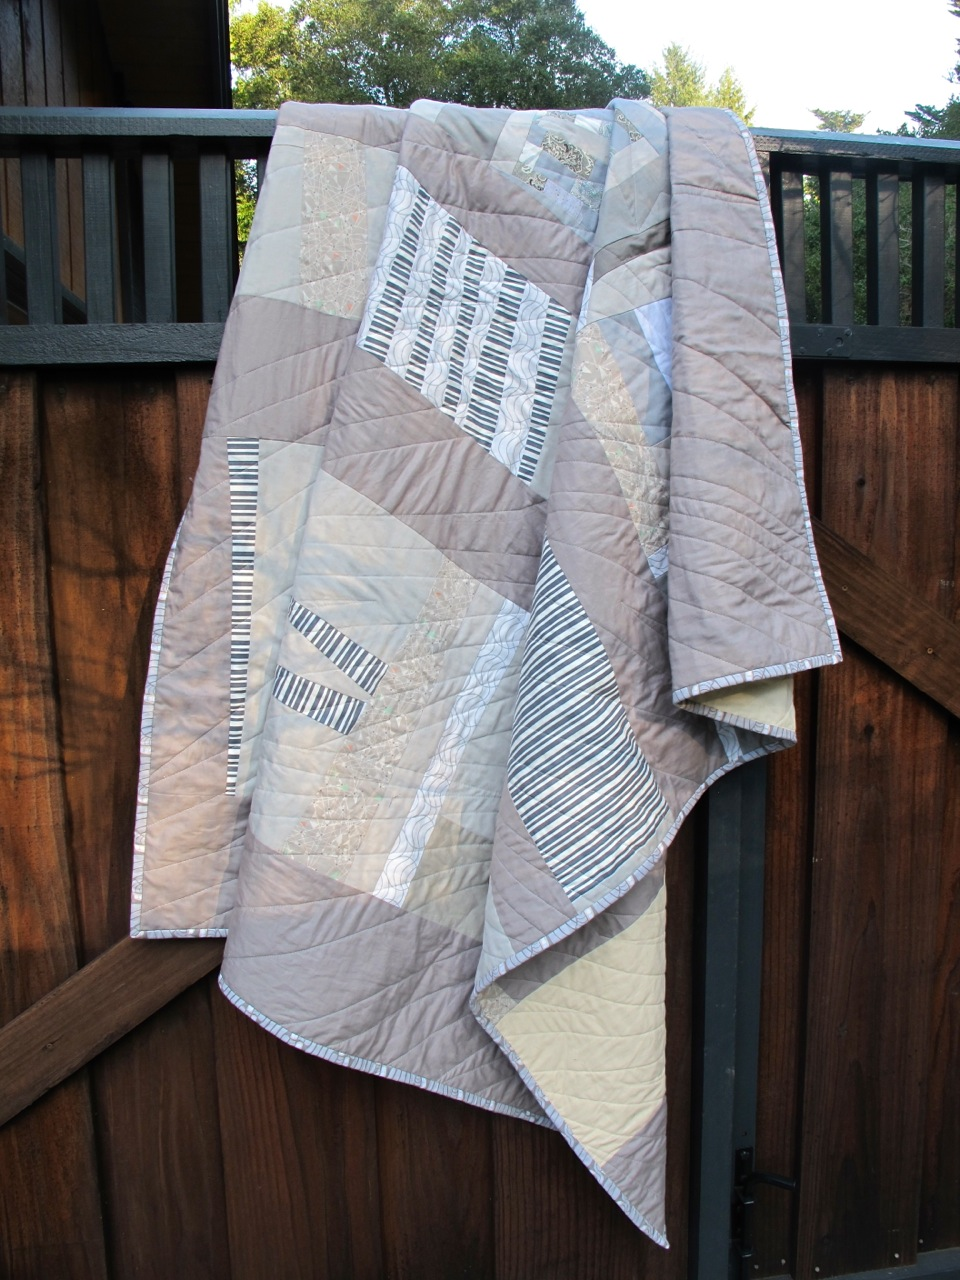 Shades of Grey Quilt by Carol Van Zandt